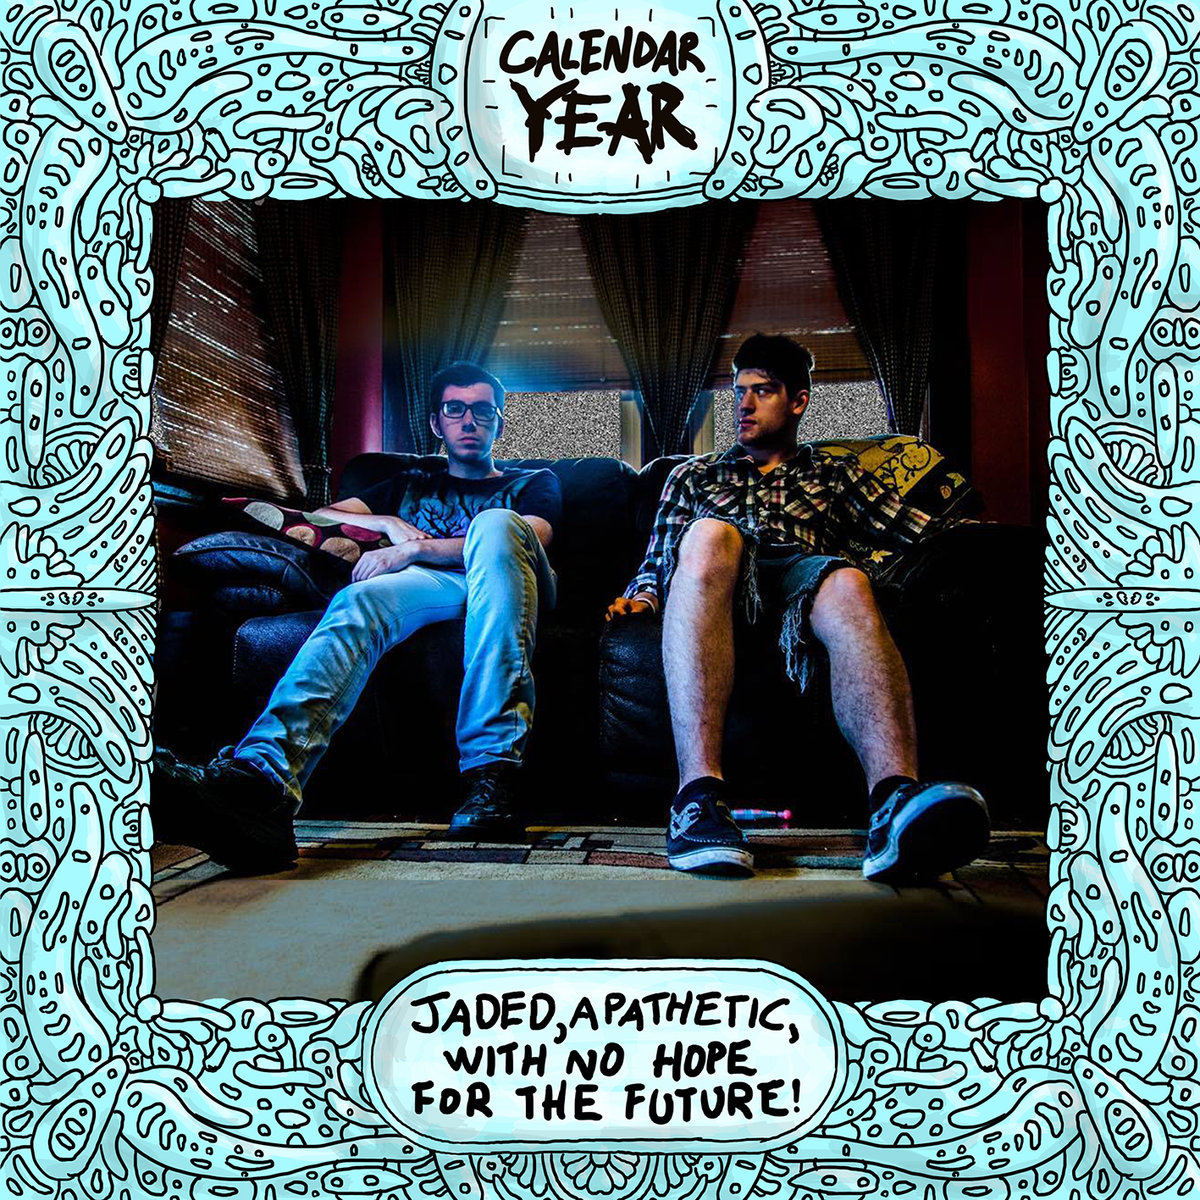 Calendar Year - Jaded, Apathetic, with No Hope for The Future!